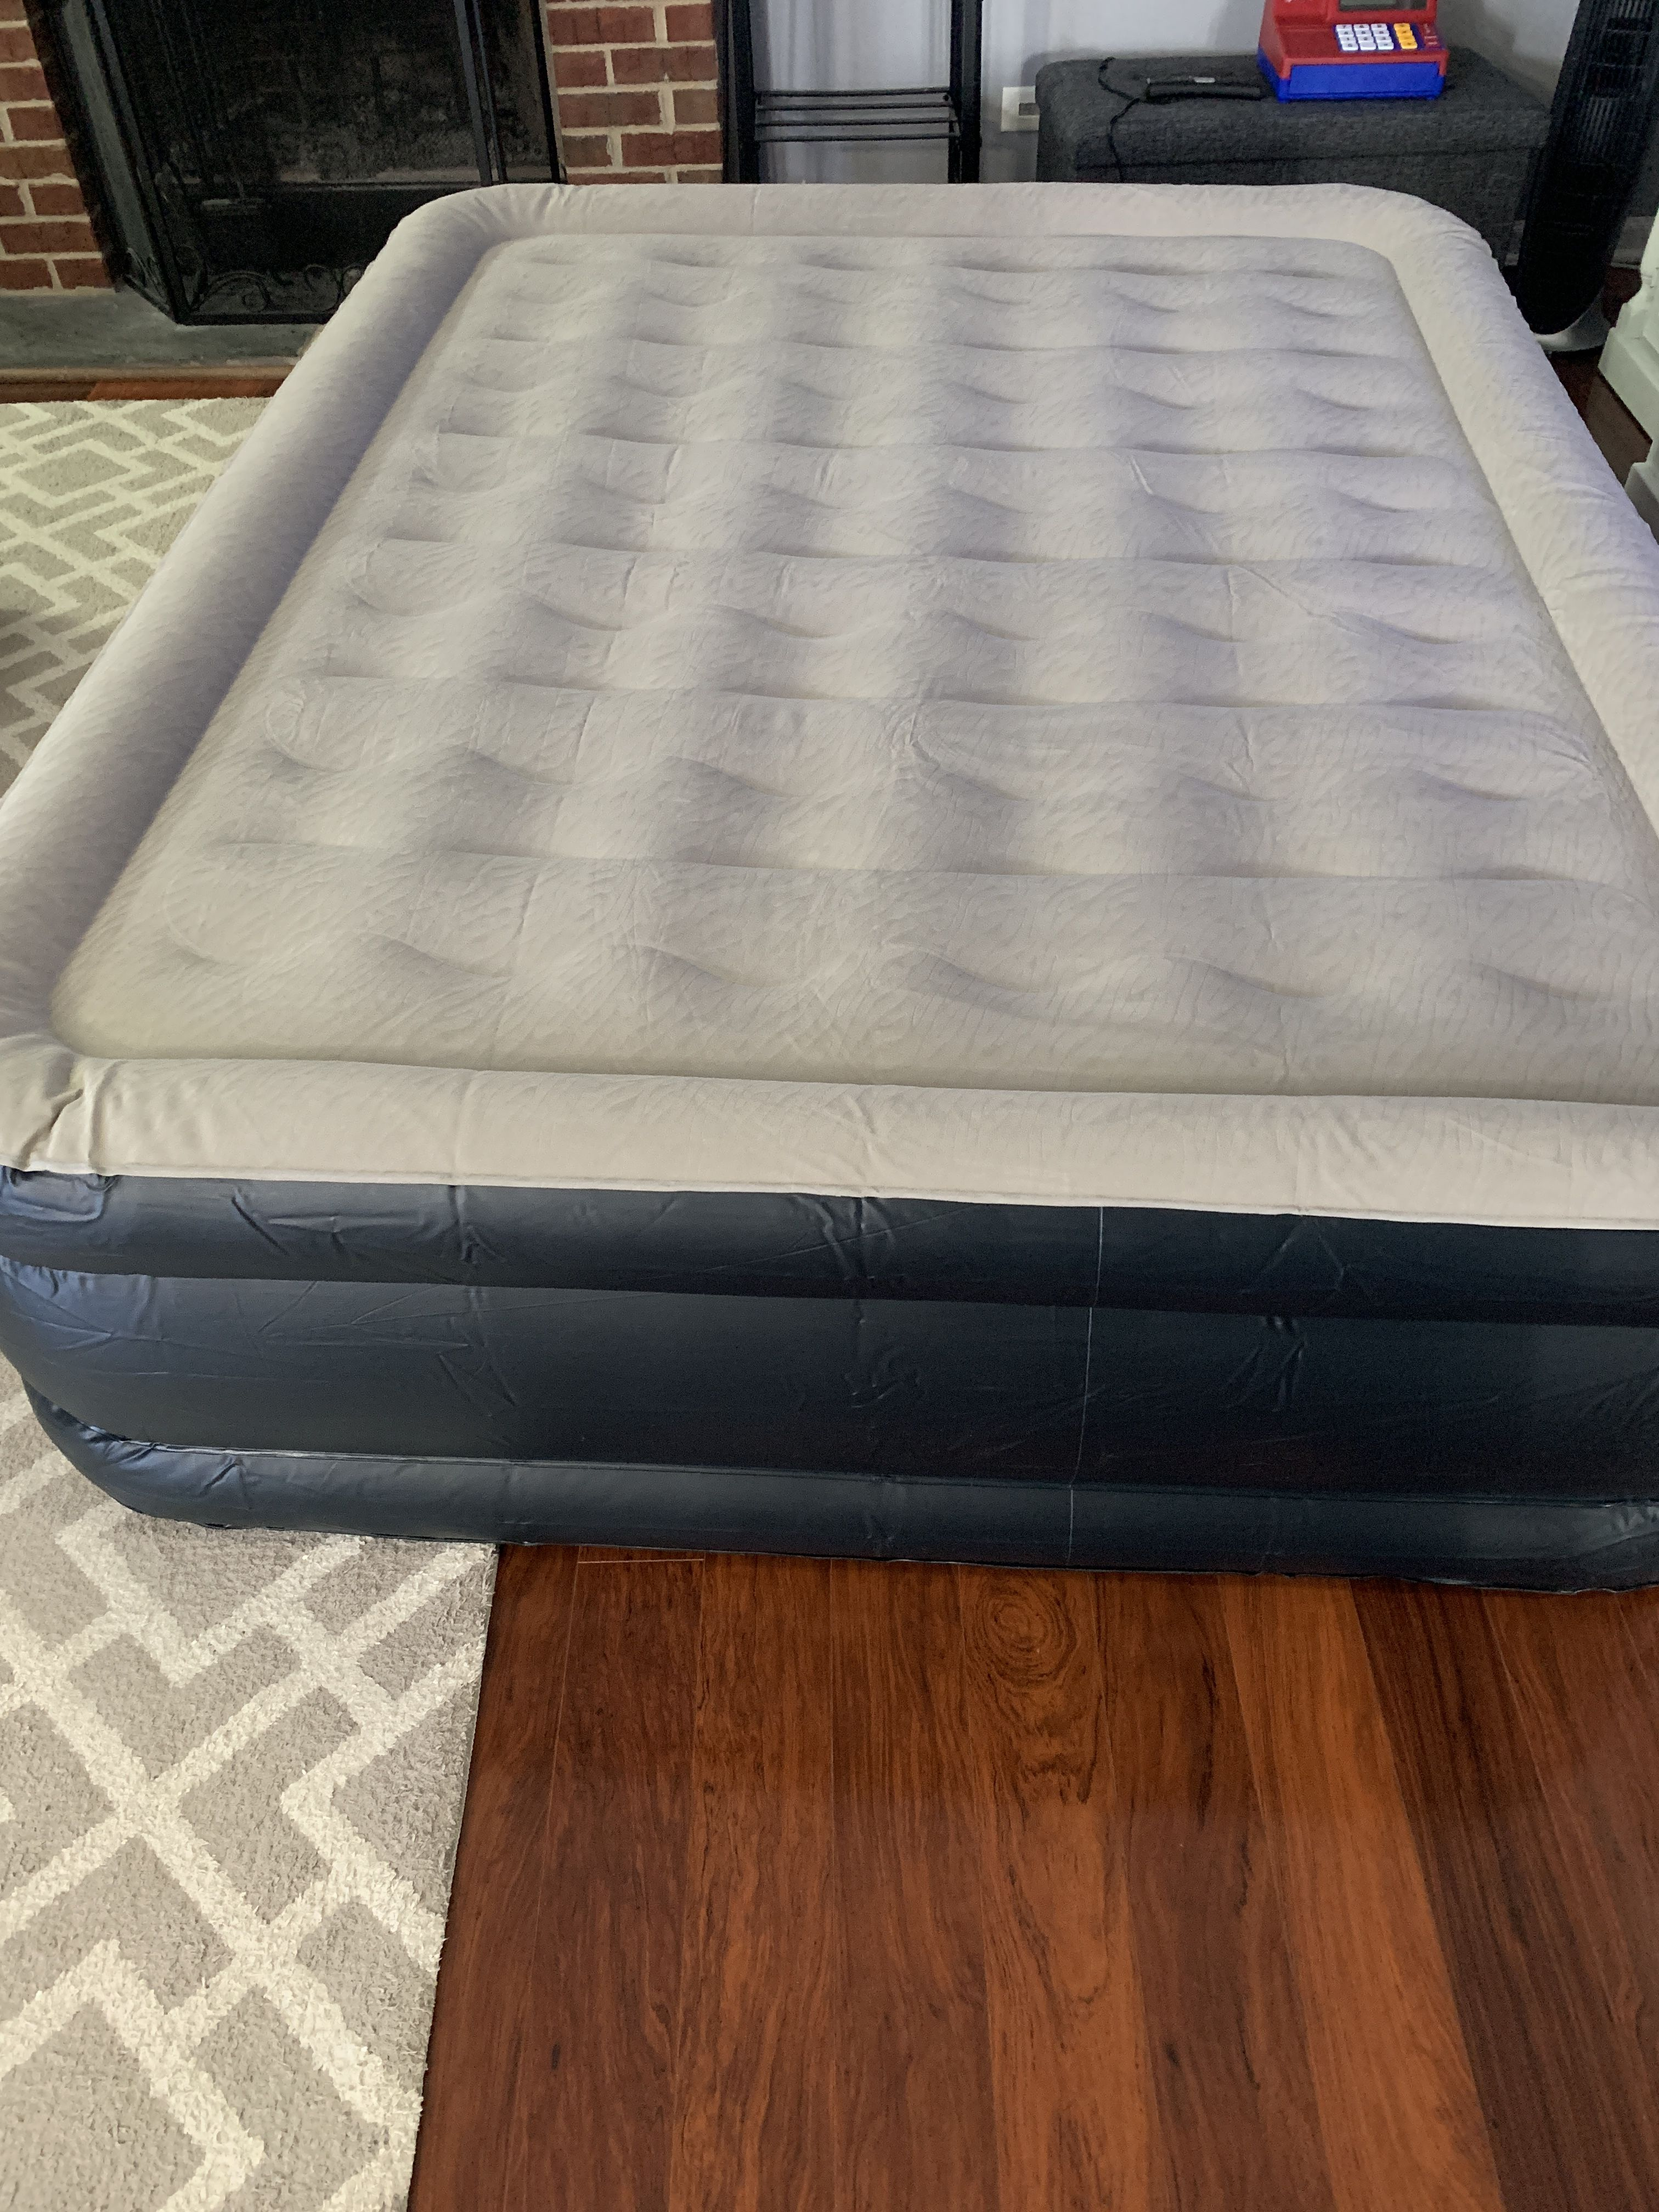 If you're in need of a nice air mattress look no further